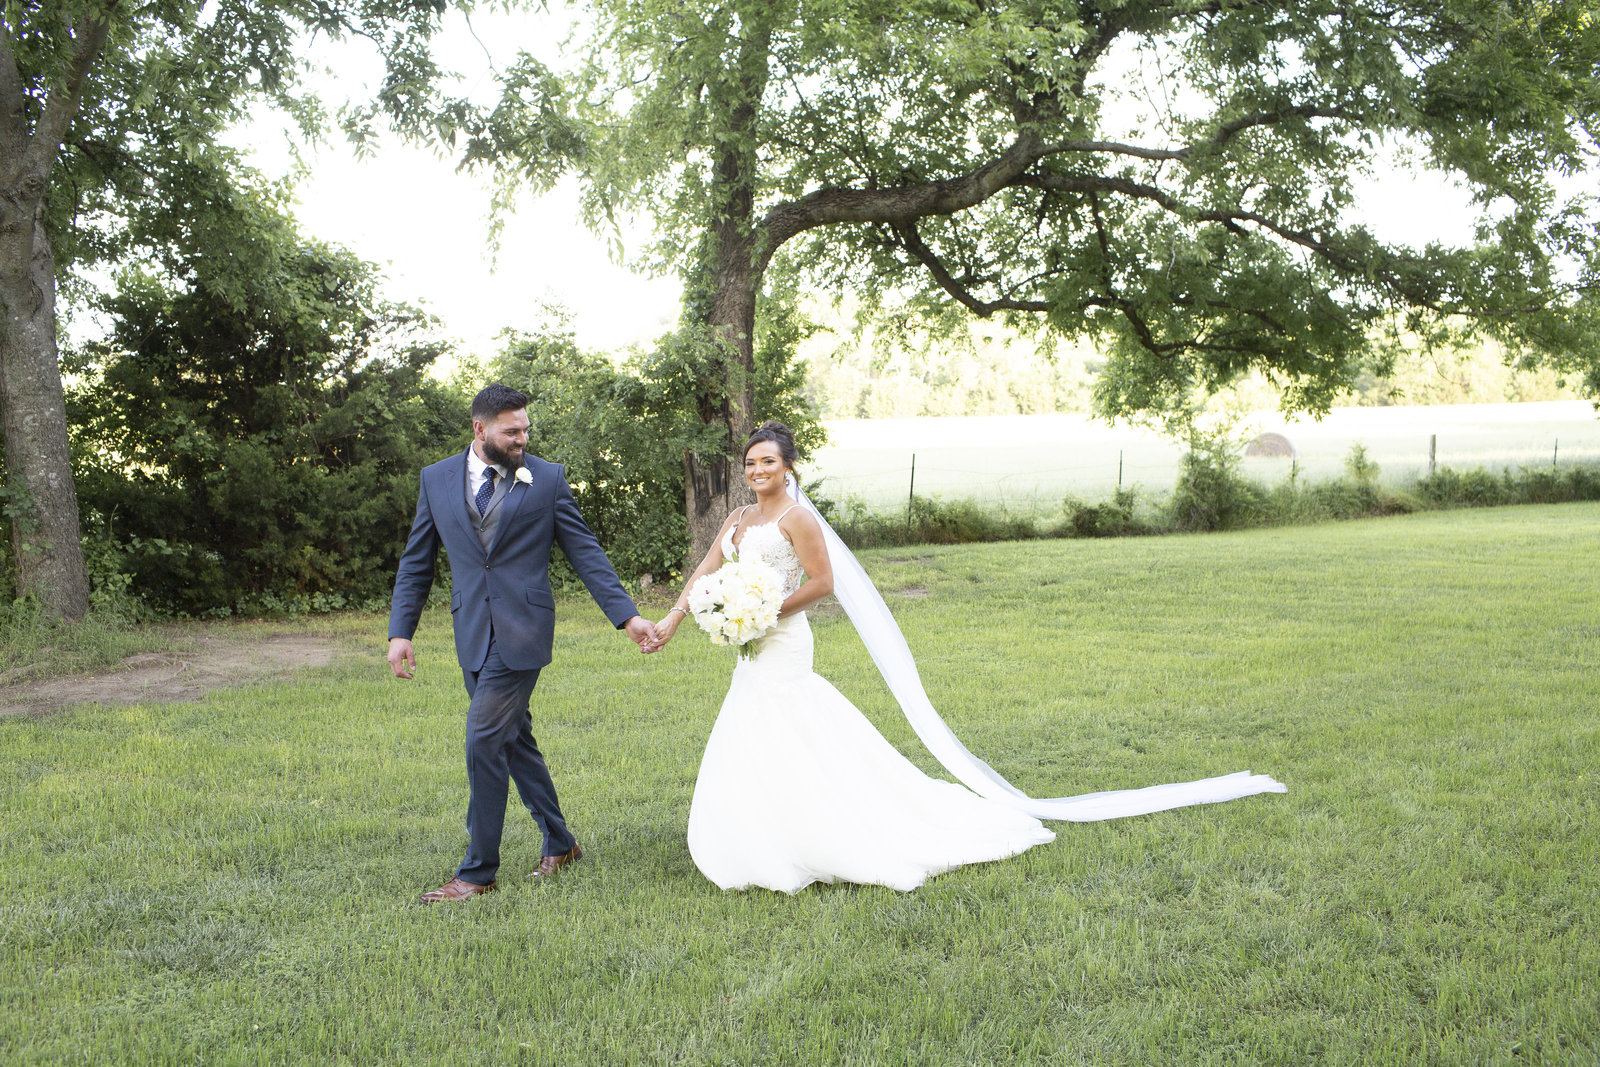 RMPhotography_PenaWedding_May4th2019_B+Gportraits-21